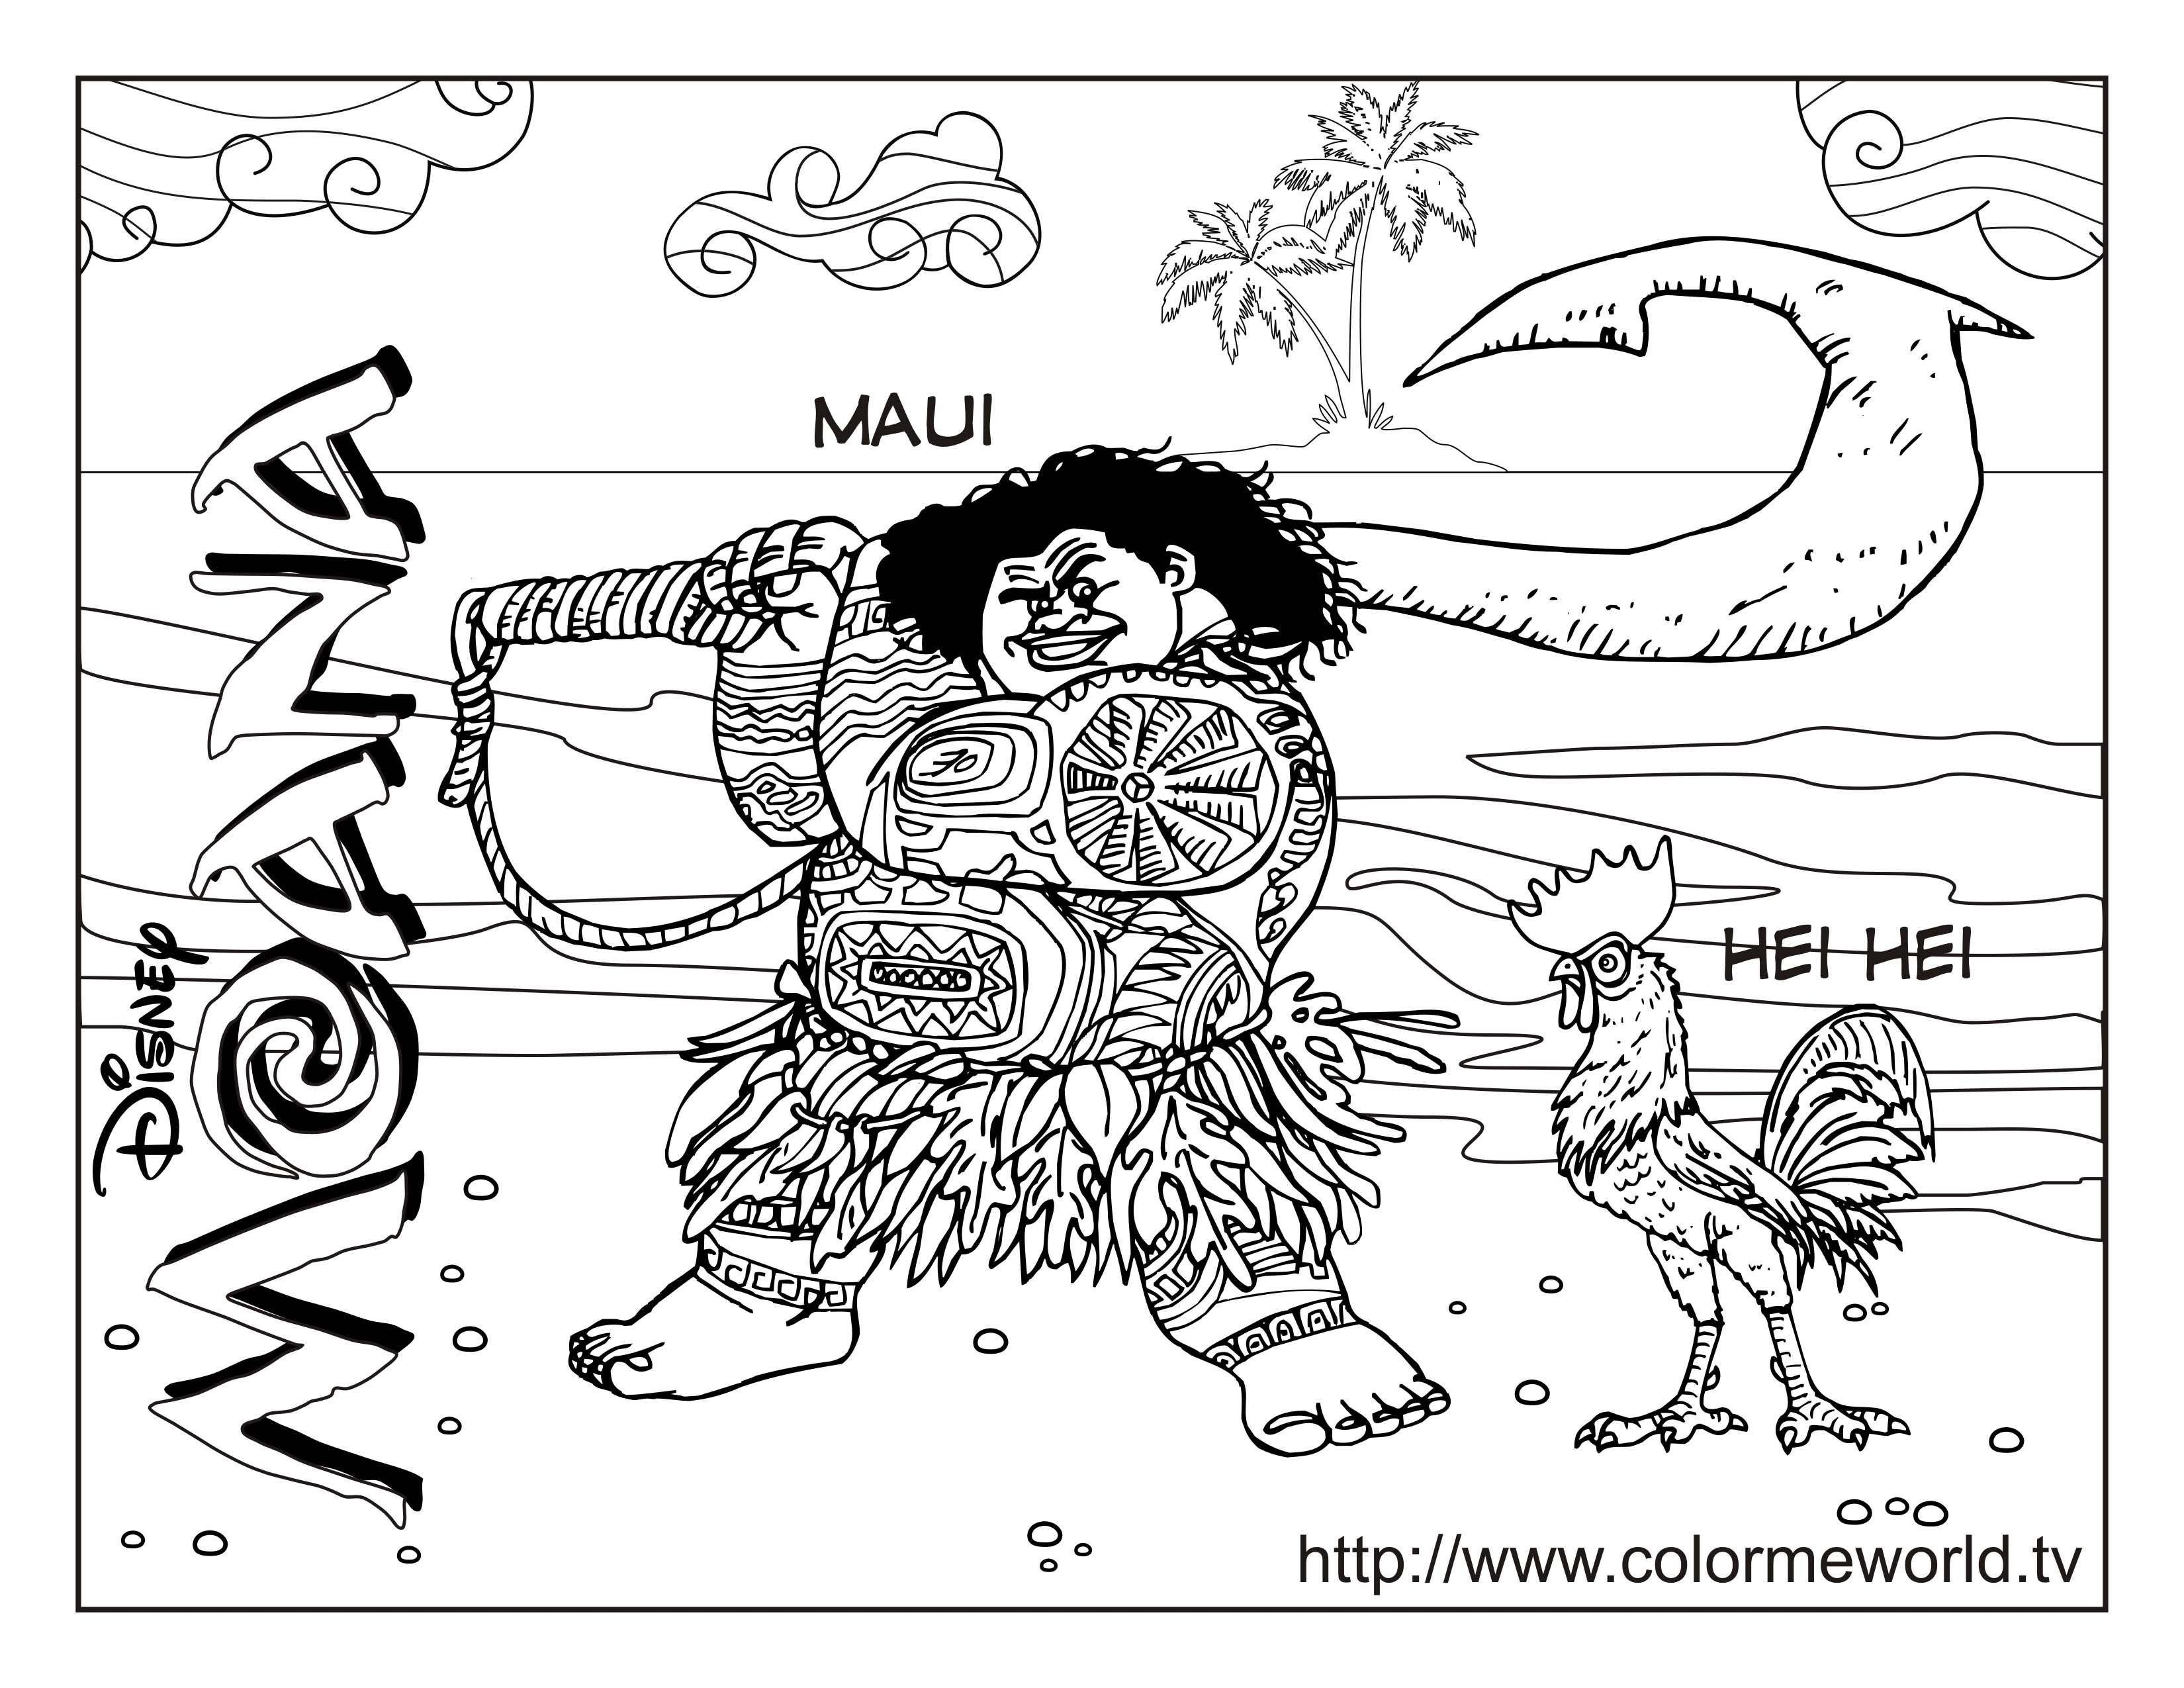 Moana coloring pages free printable moana pdf coloring sheets for kids